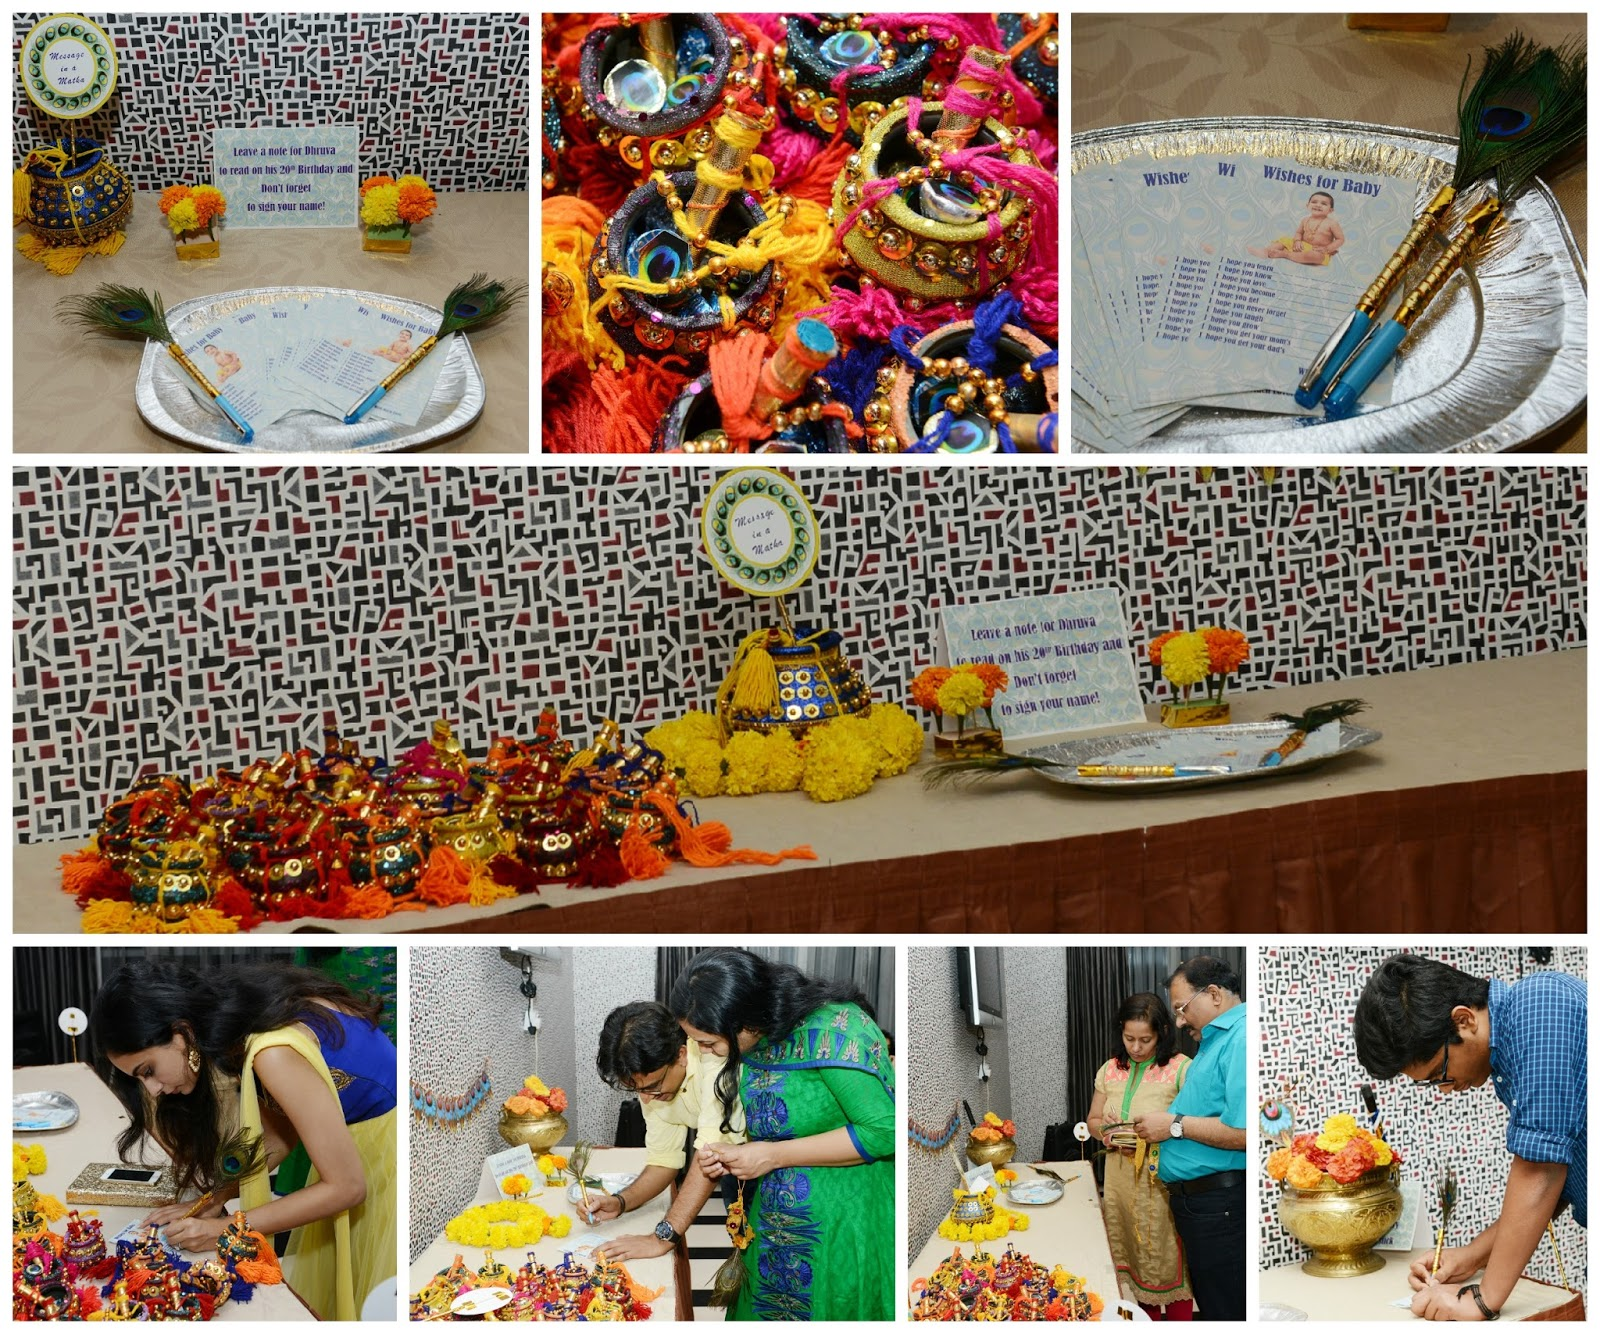 A Customised Cake With Lord Krishna/Kisna Themed All